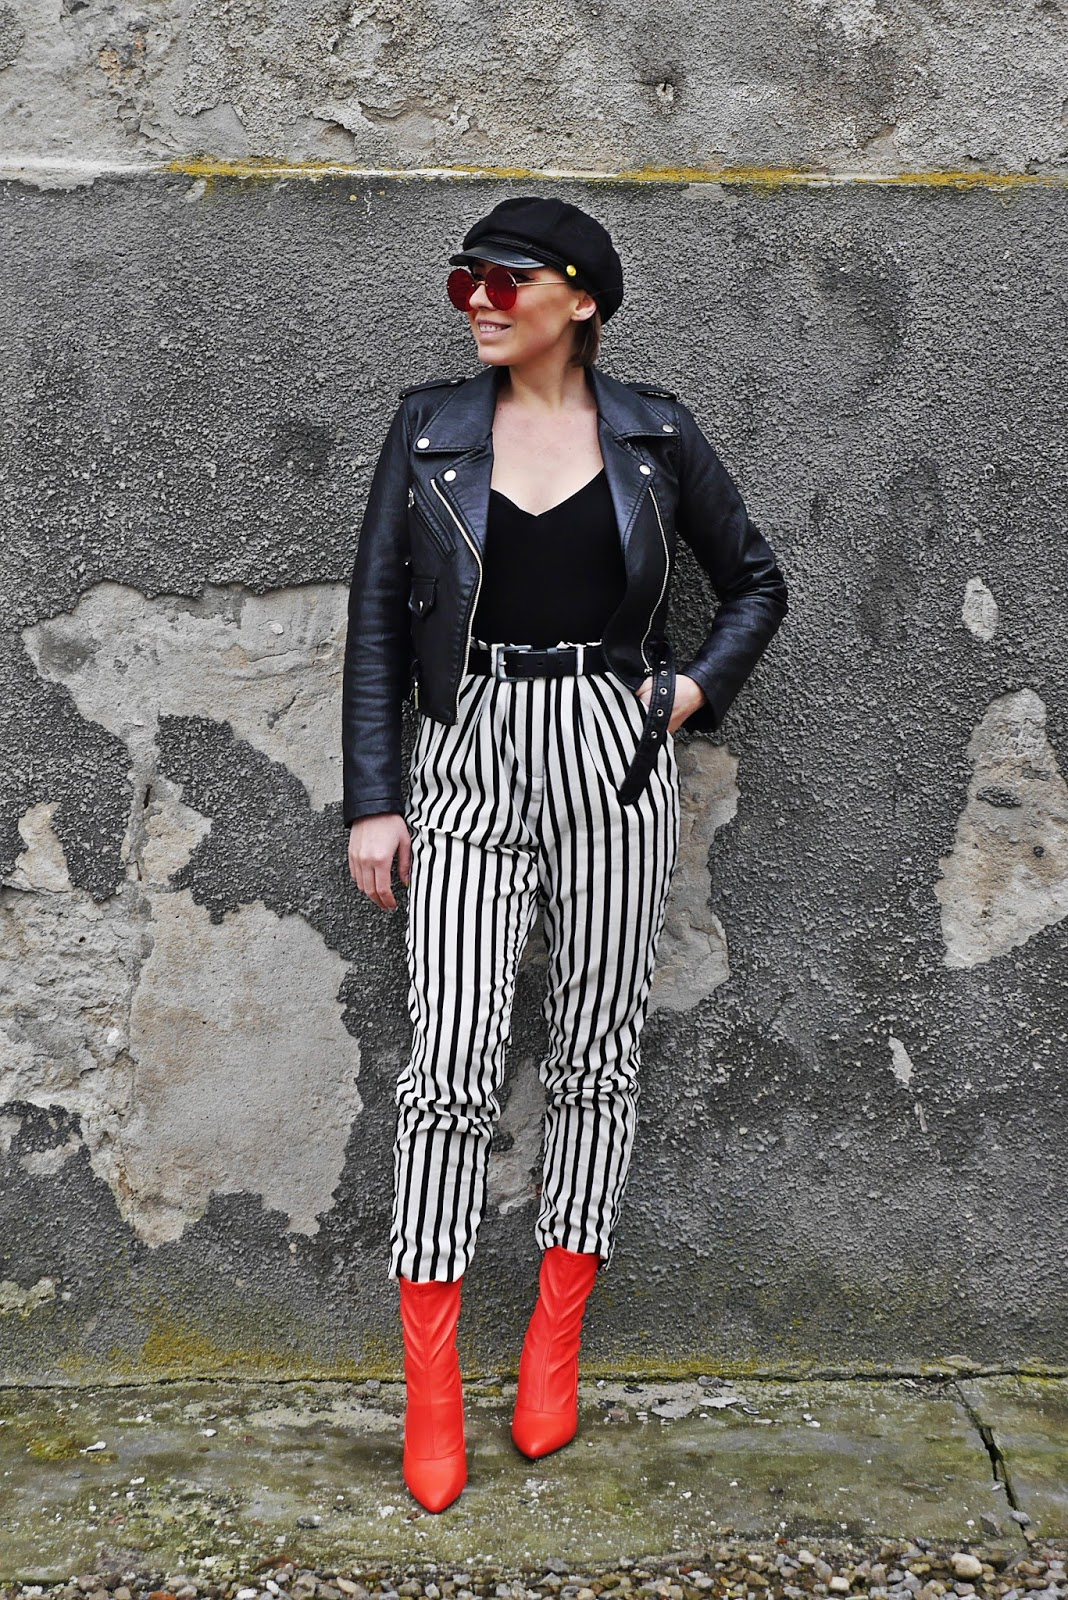 leather biker jacket stripes pants karyn blog modowy